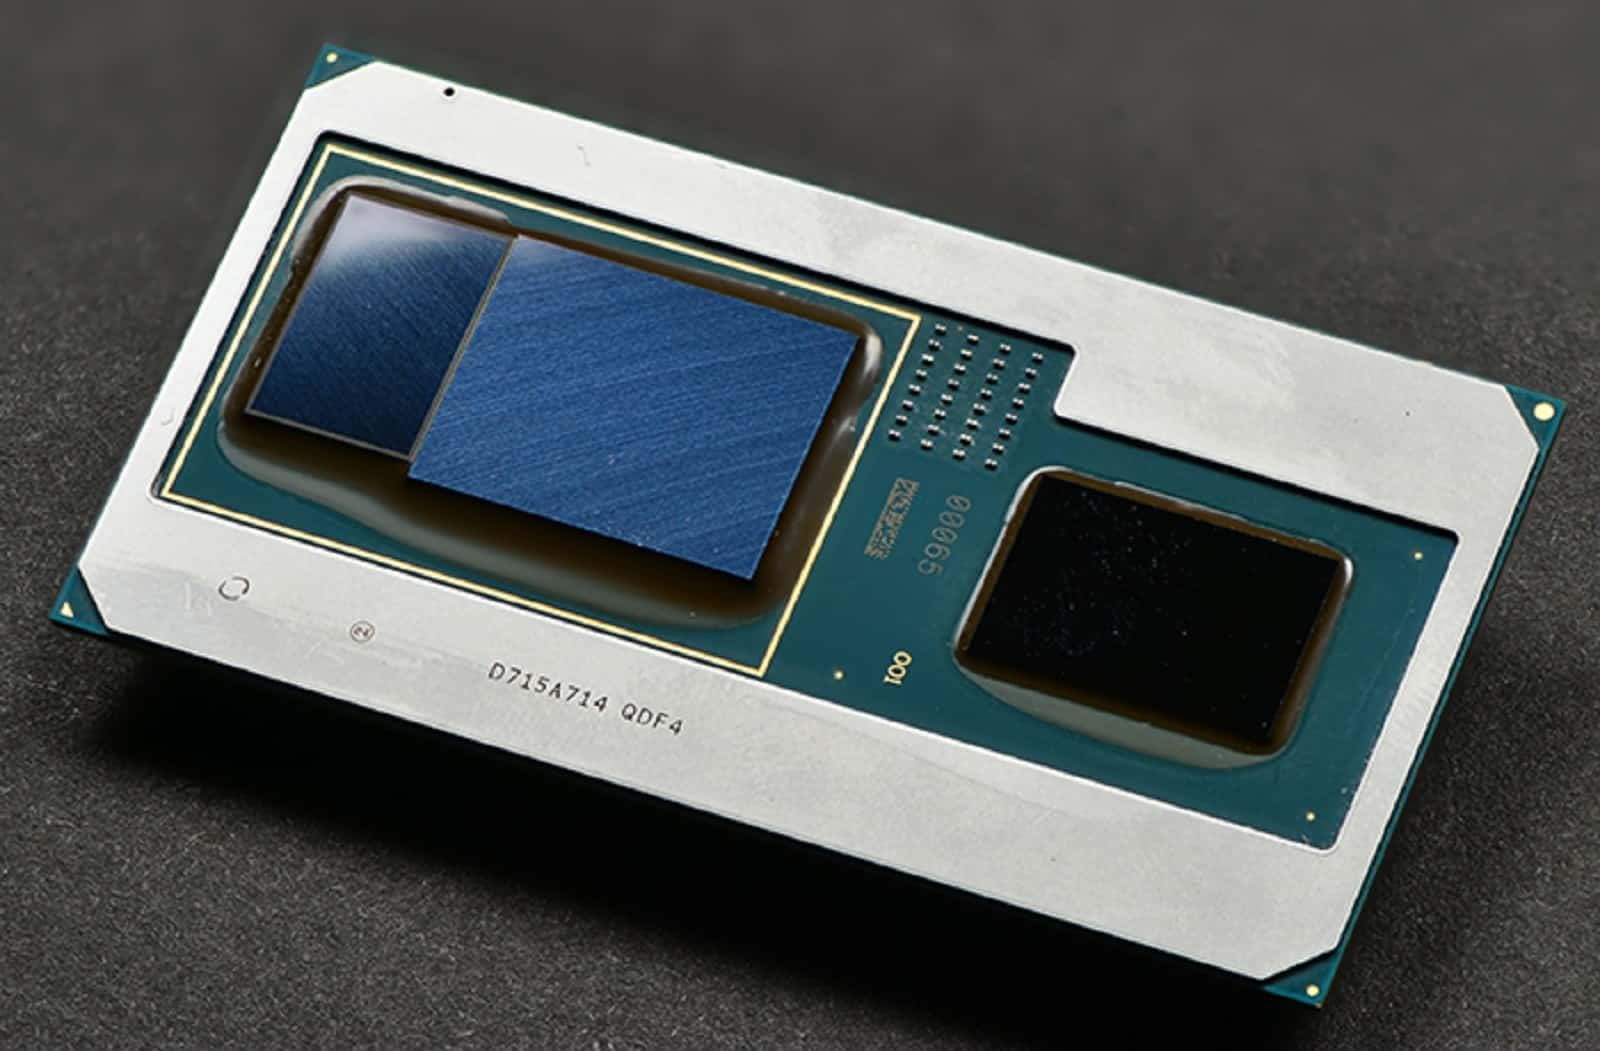 Intel AMD chip